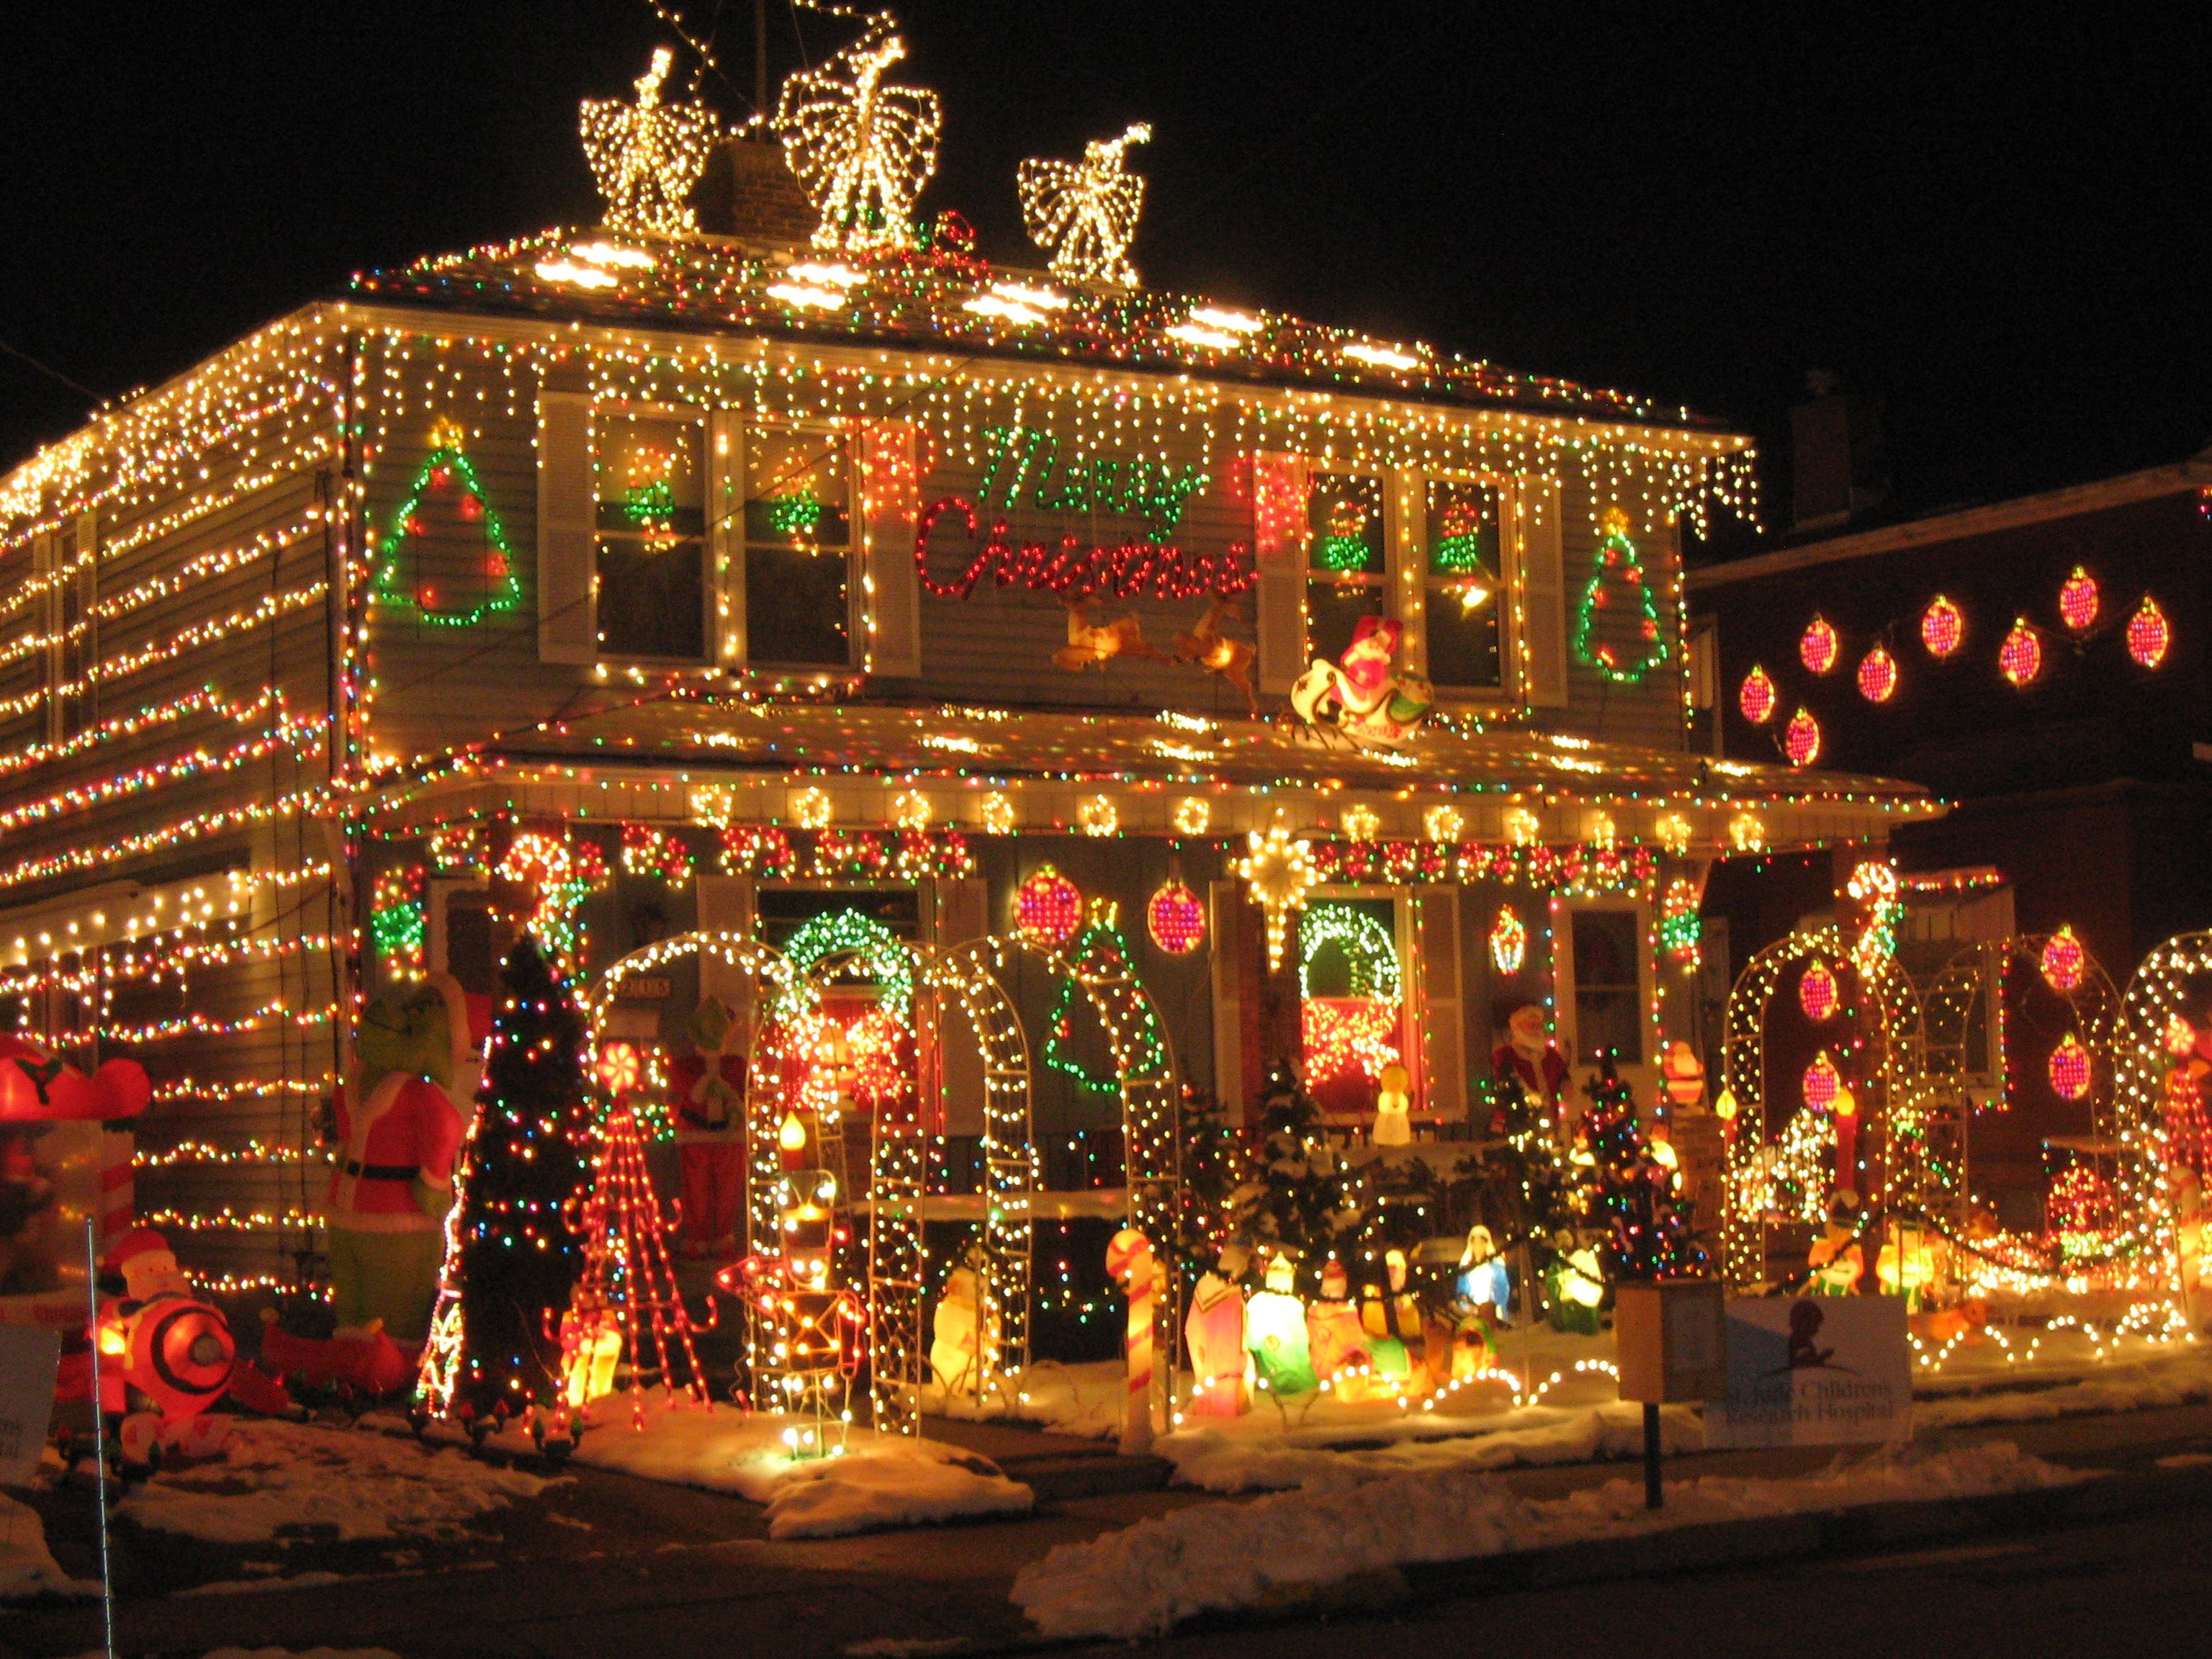 Wonderful Lights | House With Christmas Lights To Music | Christmas House Light